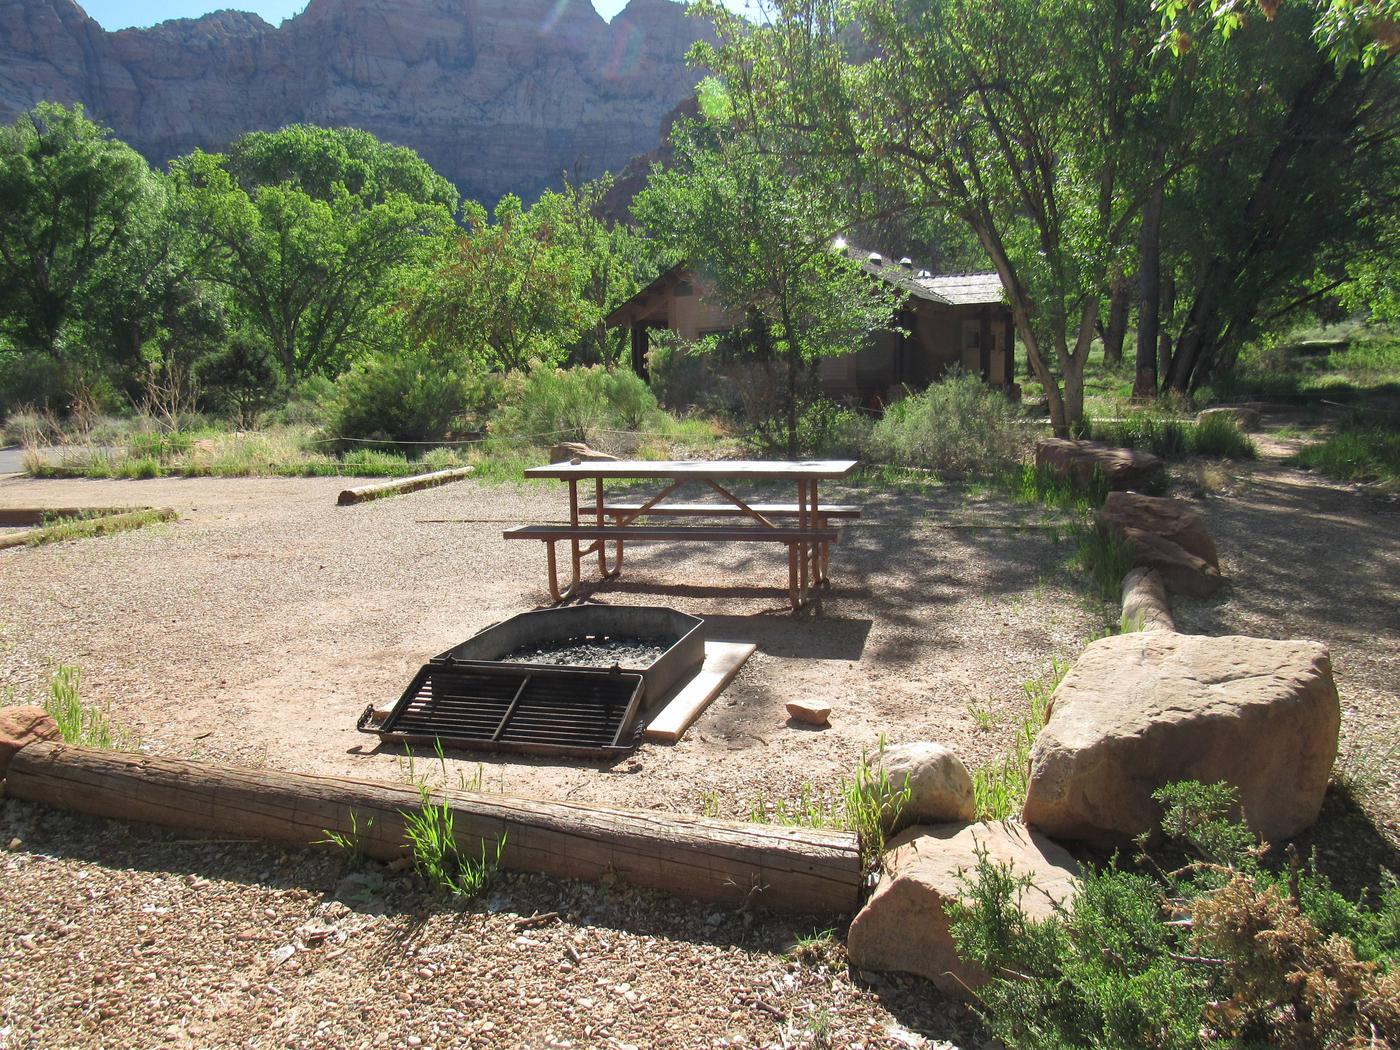 C15 firepitC15 picnic area and firepit